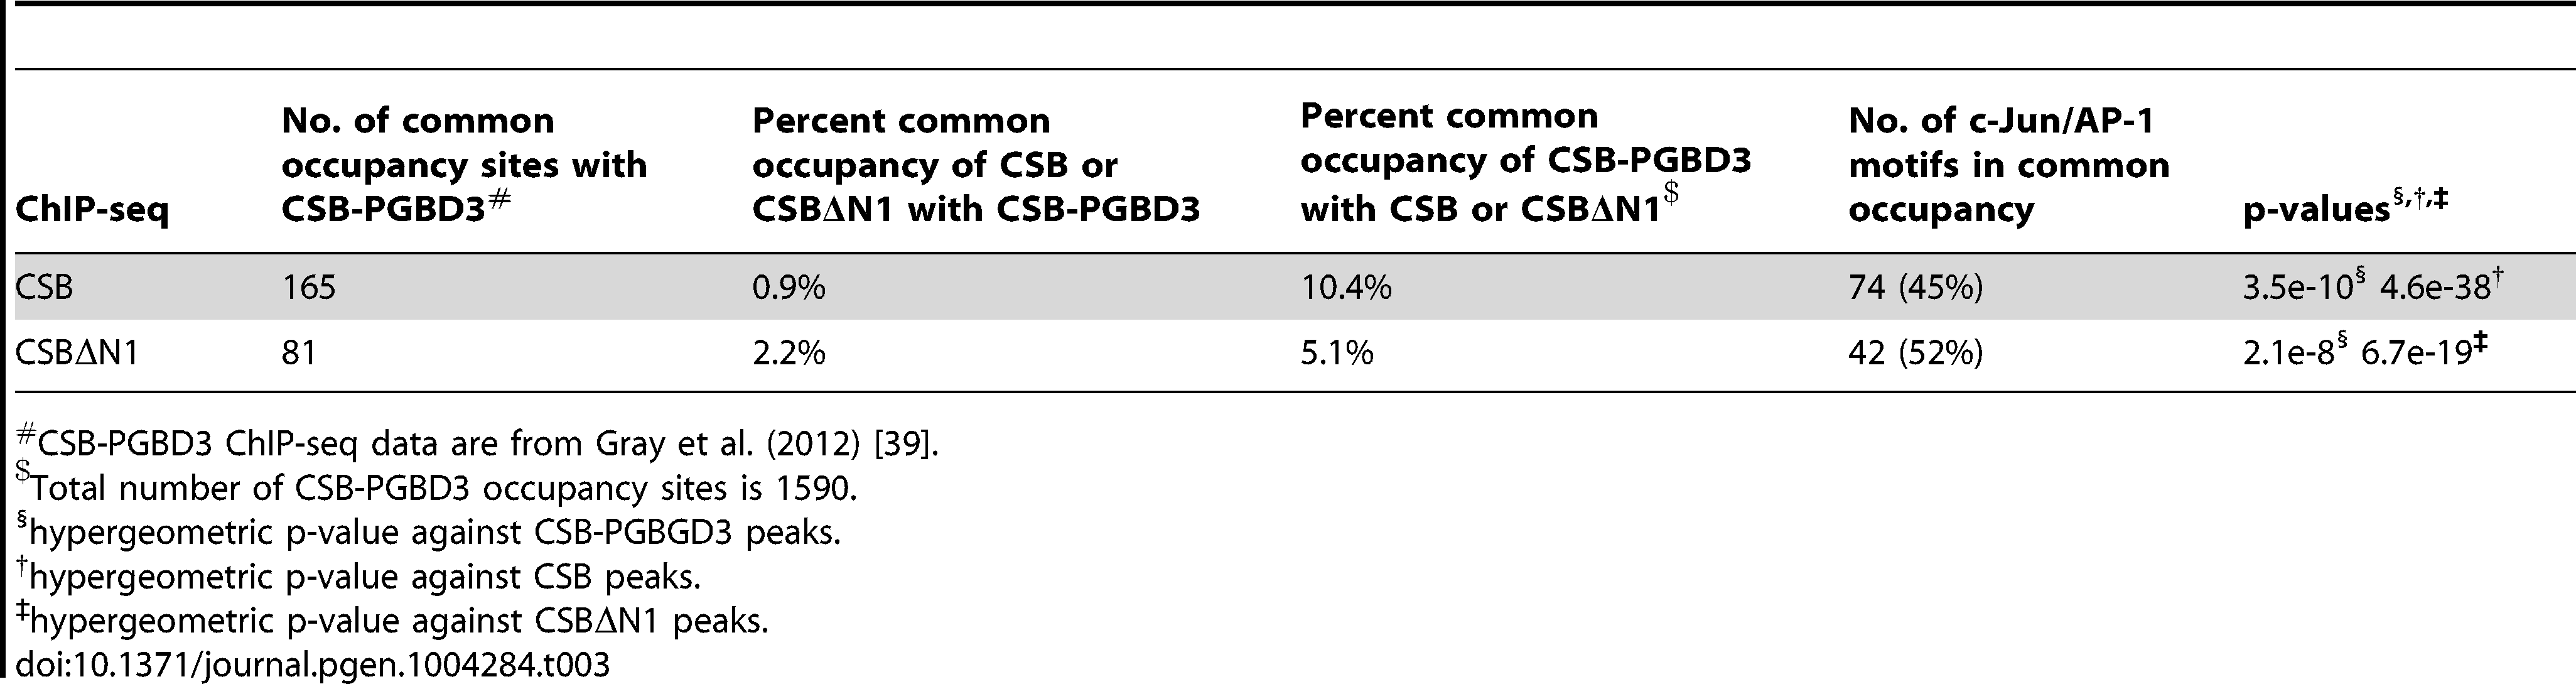 "Comparison of CSB and CSBΔN1 occupancy with CSB-PGBD3<em class=""ref"">#</em>."